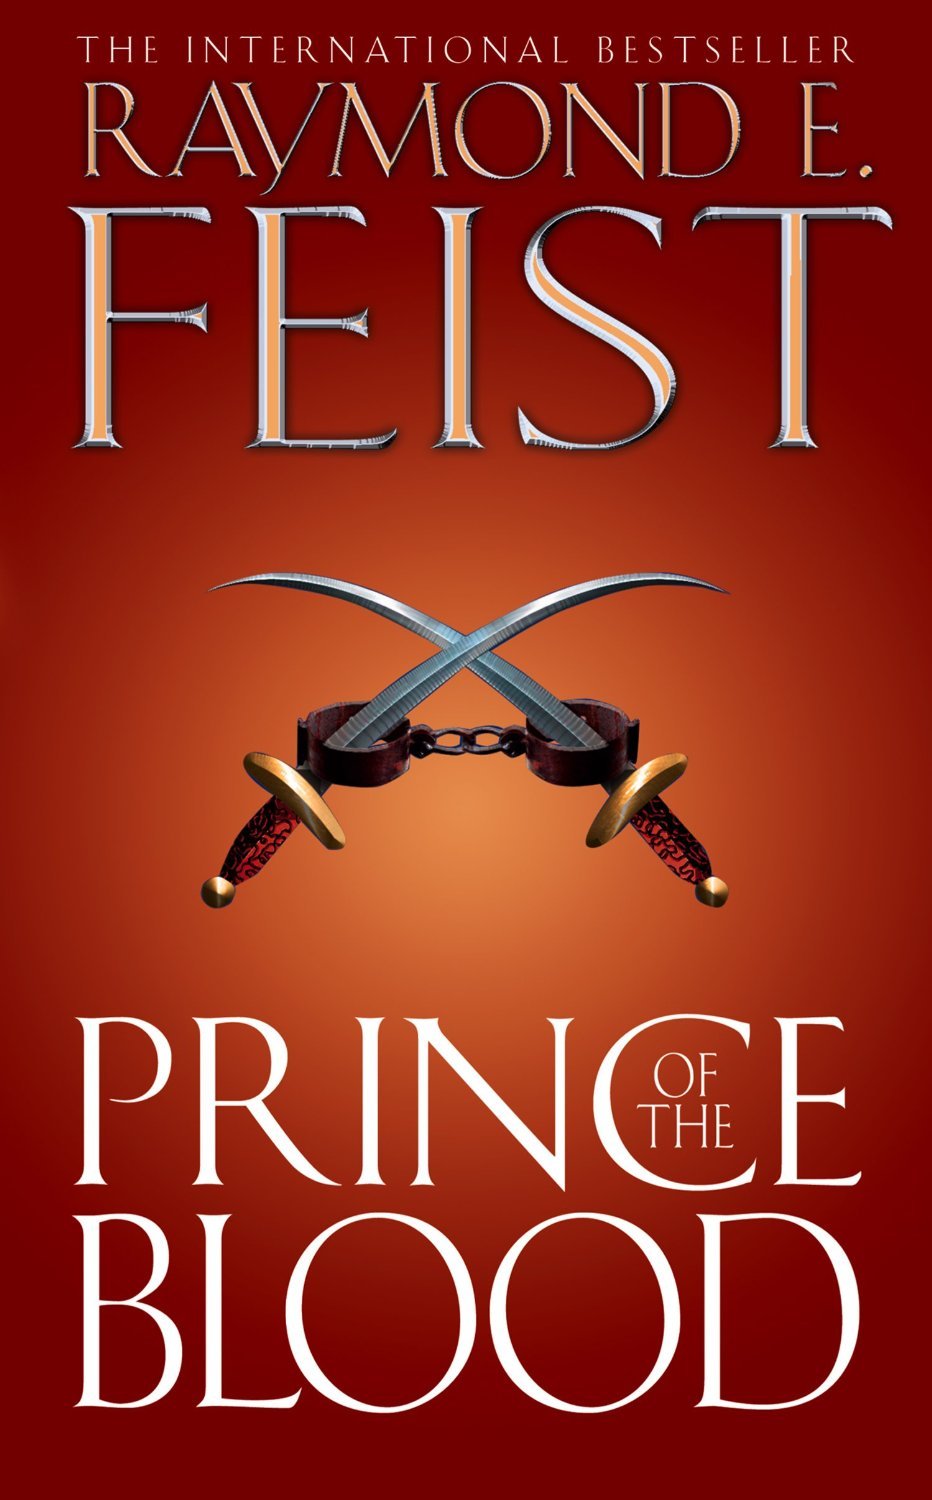 Raymond e feist prince of the blood pdf